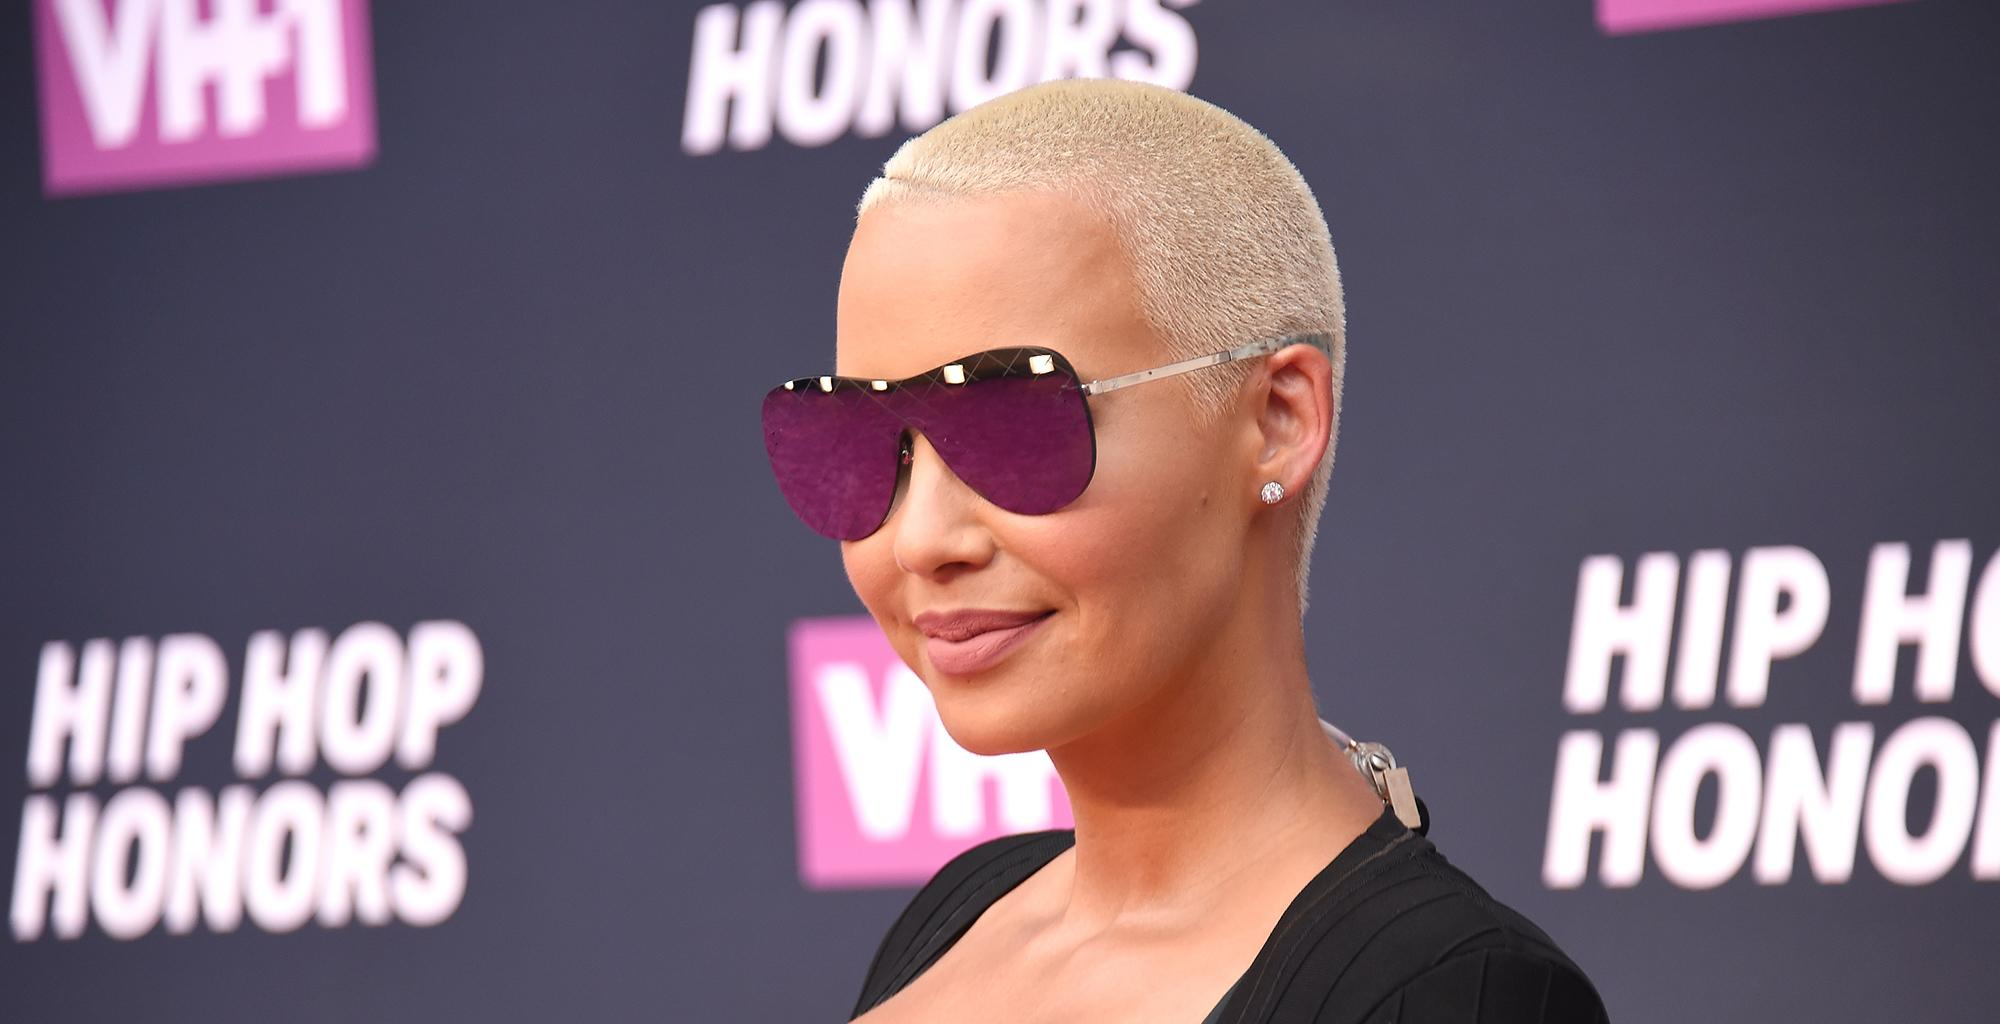 Amber Rose Updates Fans On Her Pregnancy - See The Video